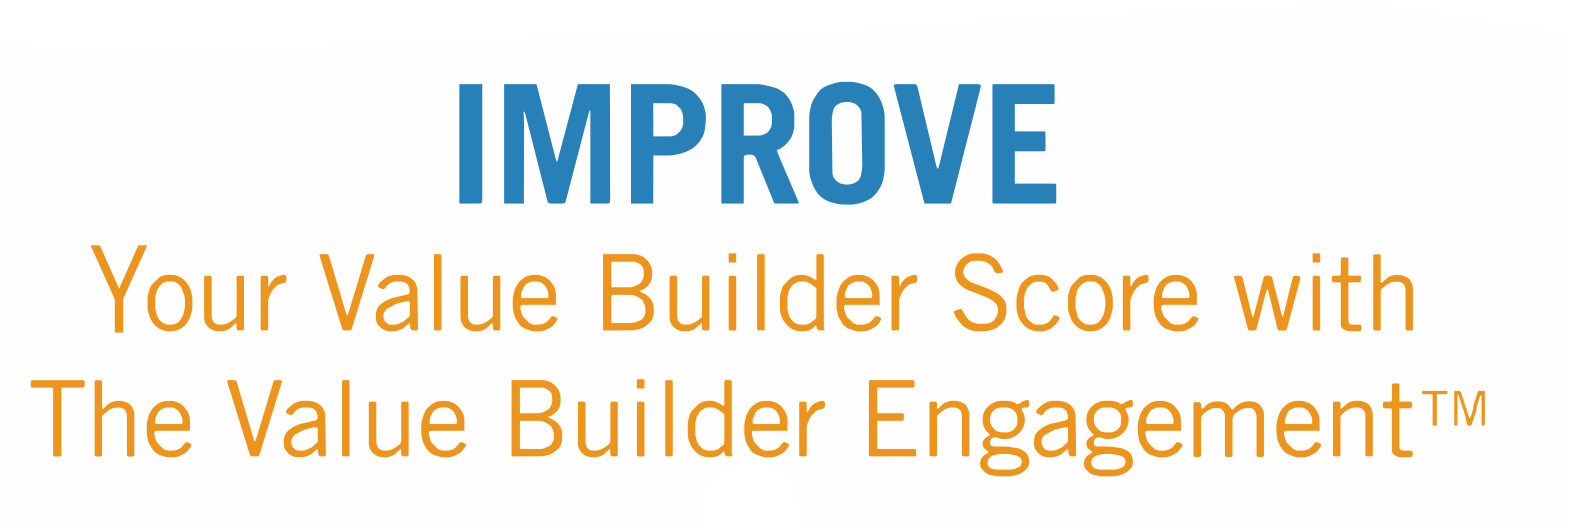 Improve your value builder score with the value builder engagement